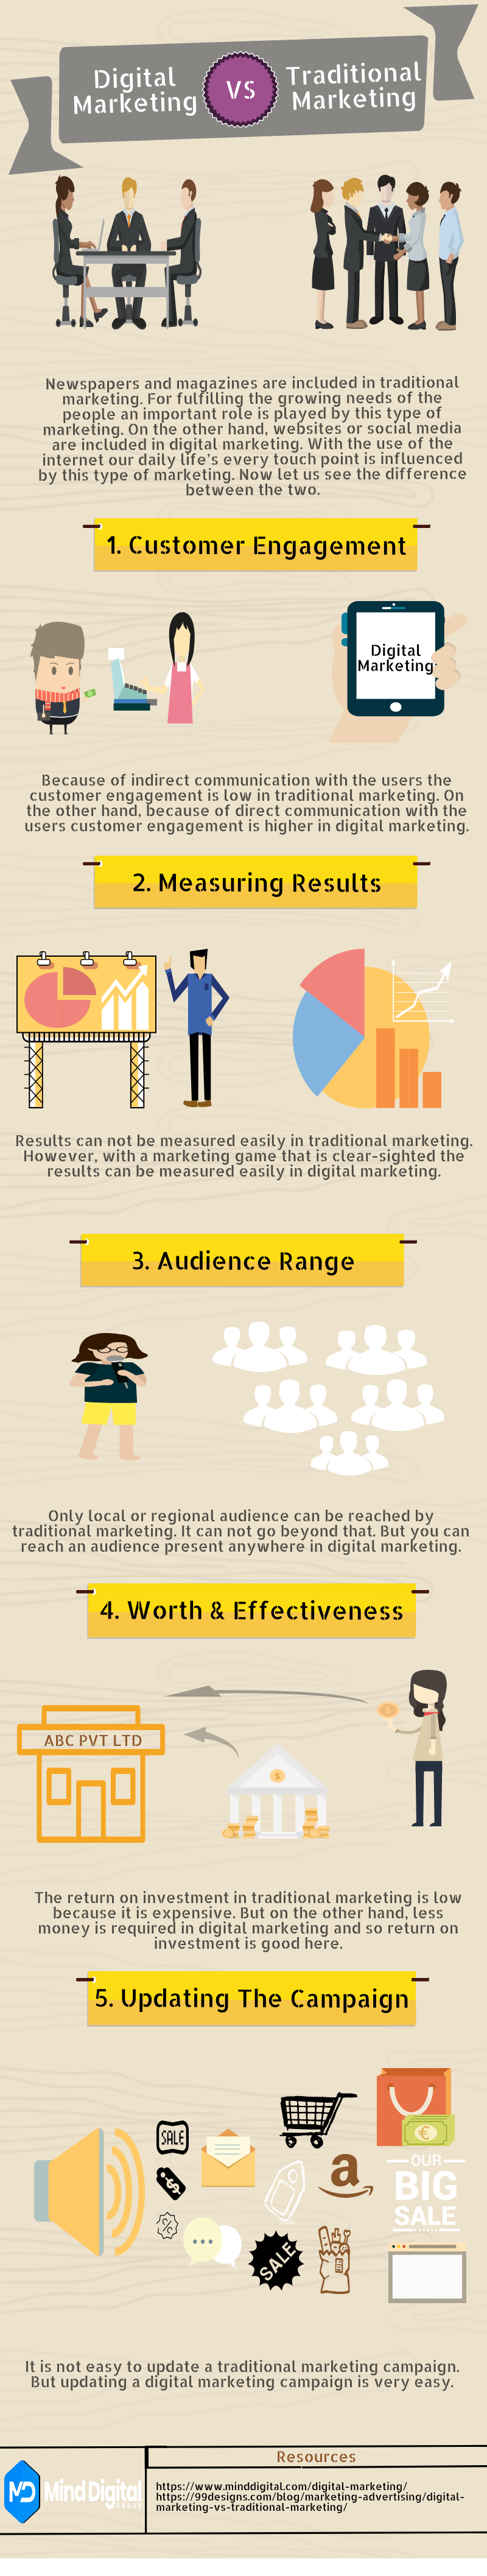 Digital Marketing vs Traditional Marketing [ A Detailed Infographic ]